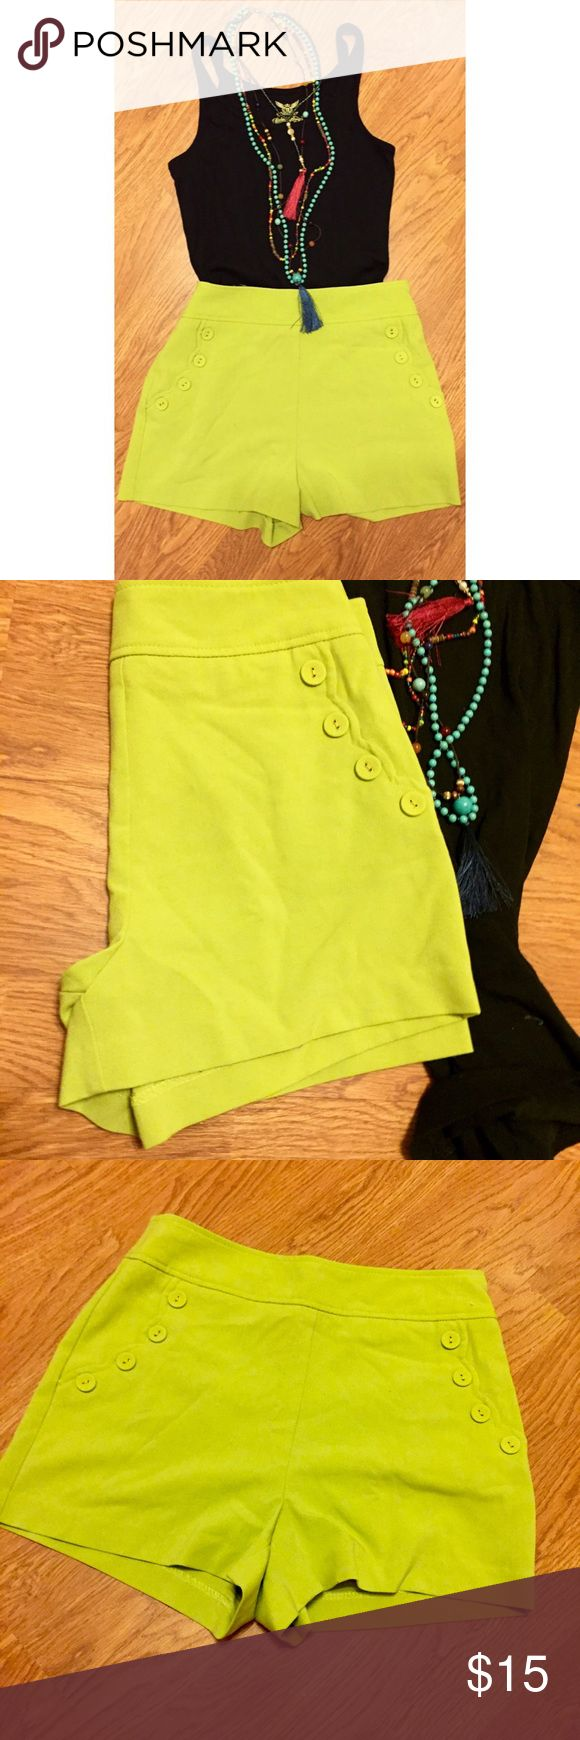 High waist green shorts OUTFIT ALERT!!  These bright green high waist shorts are the perfect item to mix match with any plan tank. The outfit featured is with a plan black tank and I dressed it up with a colorful necklace. The shorts are from Forever 21 and are a size Small. Forever 21 Shorts